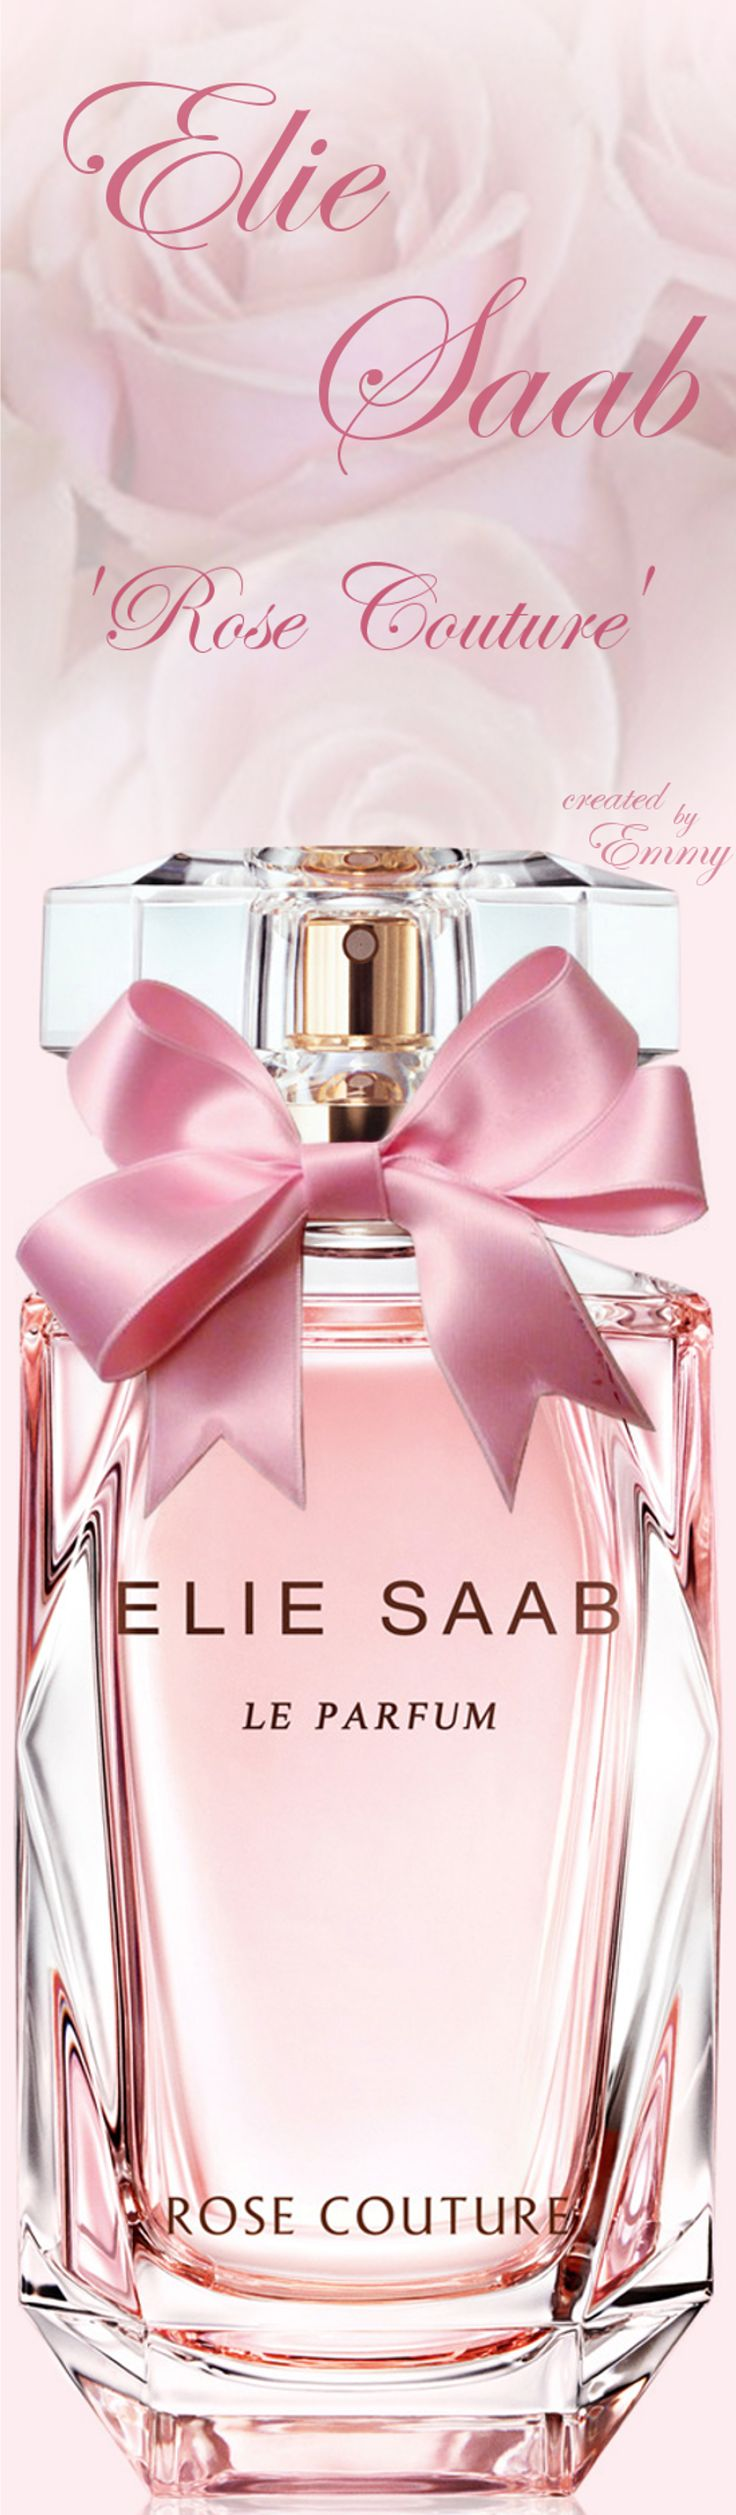 Elie Saab fragrance 'Rose Couture' Spring 2017 THE THRILL OF NEW SCENTS 30-Day Supply of any Designer Fragrance Every Month for Just $14.95 THE THRILL OF NEW SCENTS 30-Day Supply of any Designer Fragrance Every Month for Just $14.95